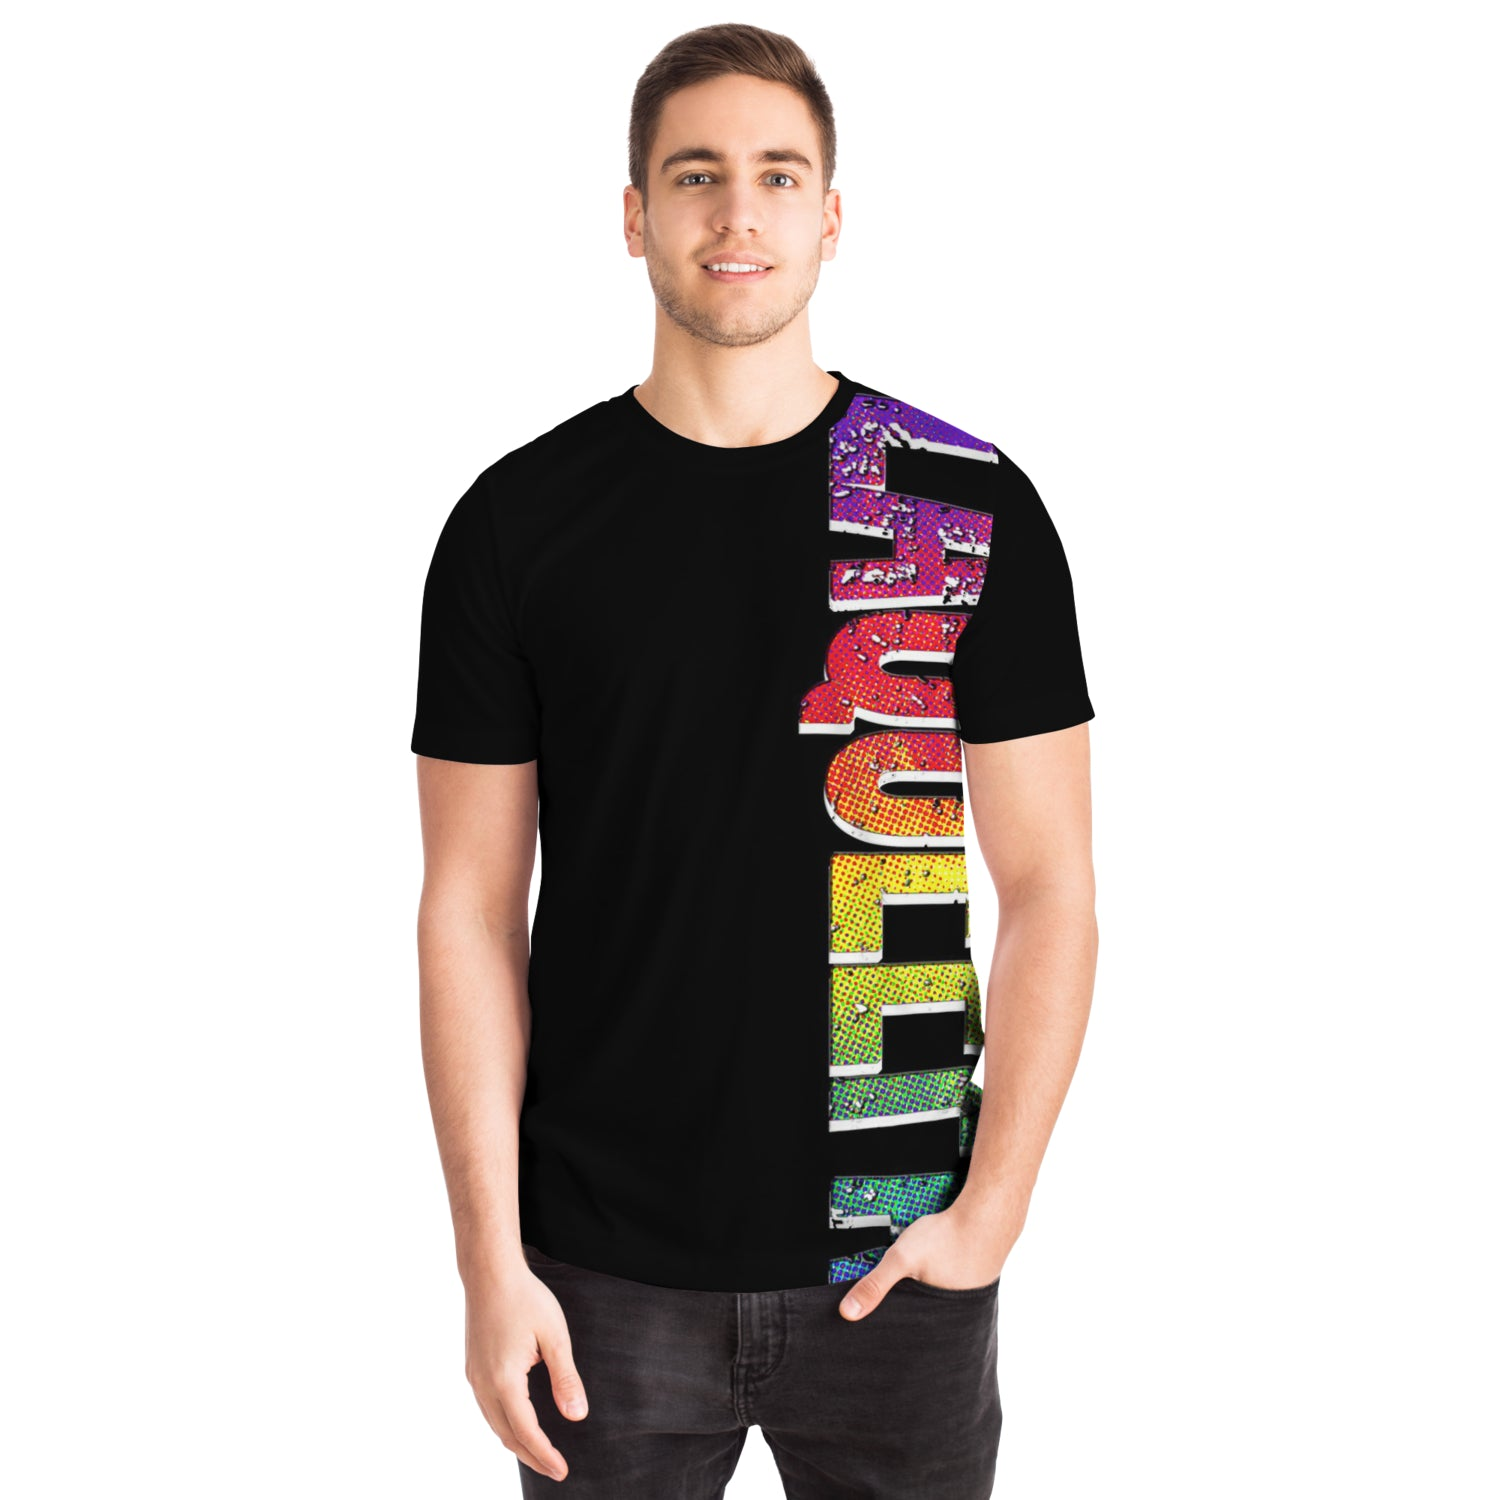 Amy LaQueefa rainbow/black PREMIUM t-shirt